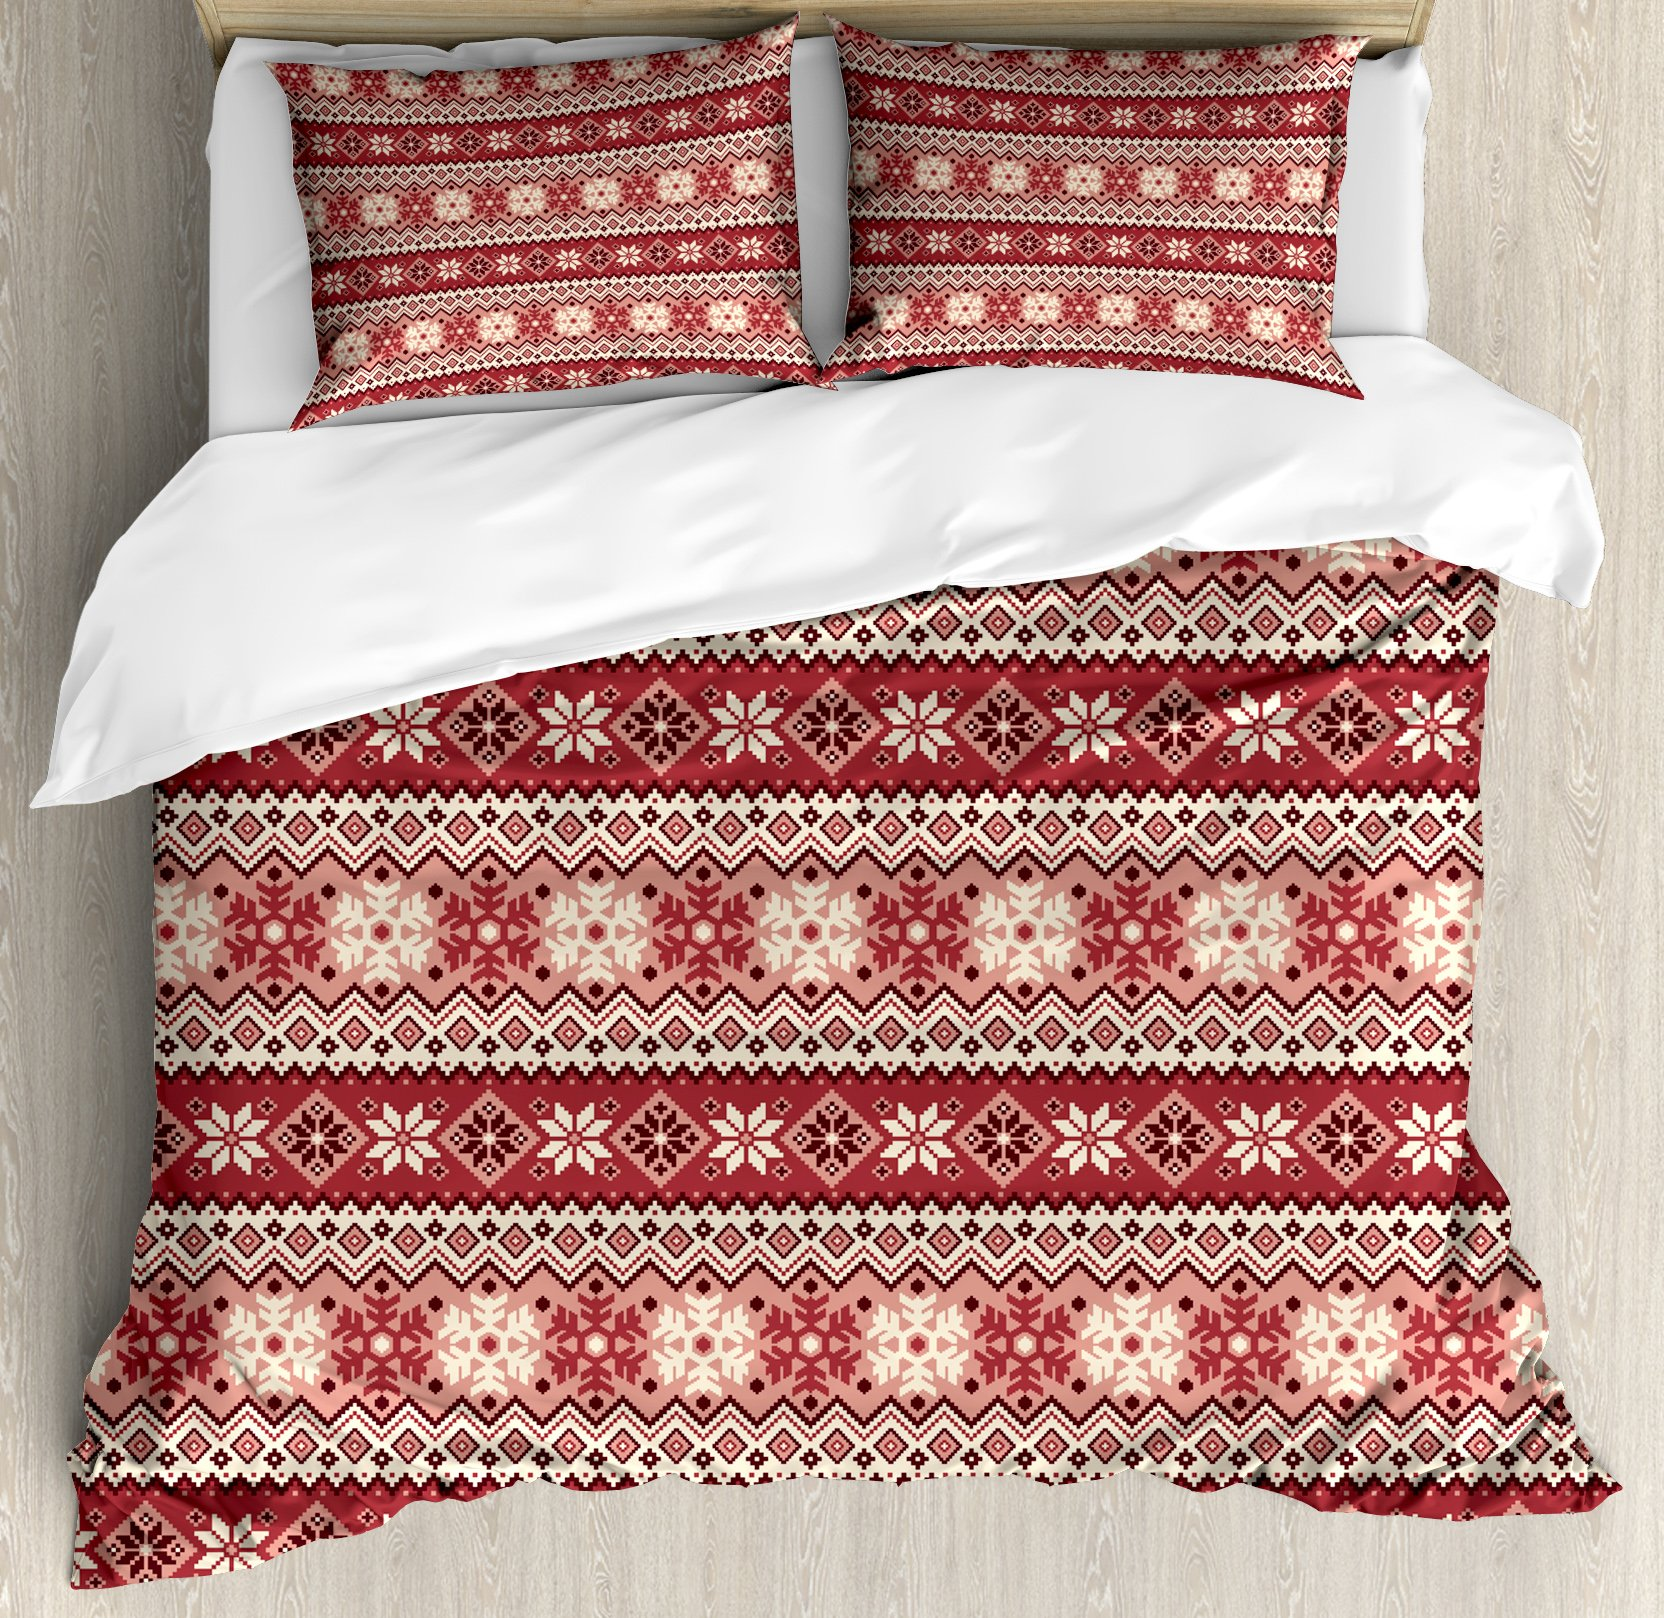 Nordic Duvet Cover Set King Size by Ambesonne, Ancestral Classic Scandinavian Geometric Pattern Christmas Snowflakes, Decorative 3 Piece Bedding Set with 2 Pillow Shams, Dark Coral Blush White